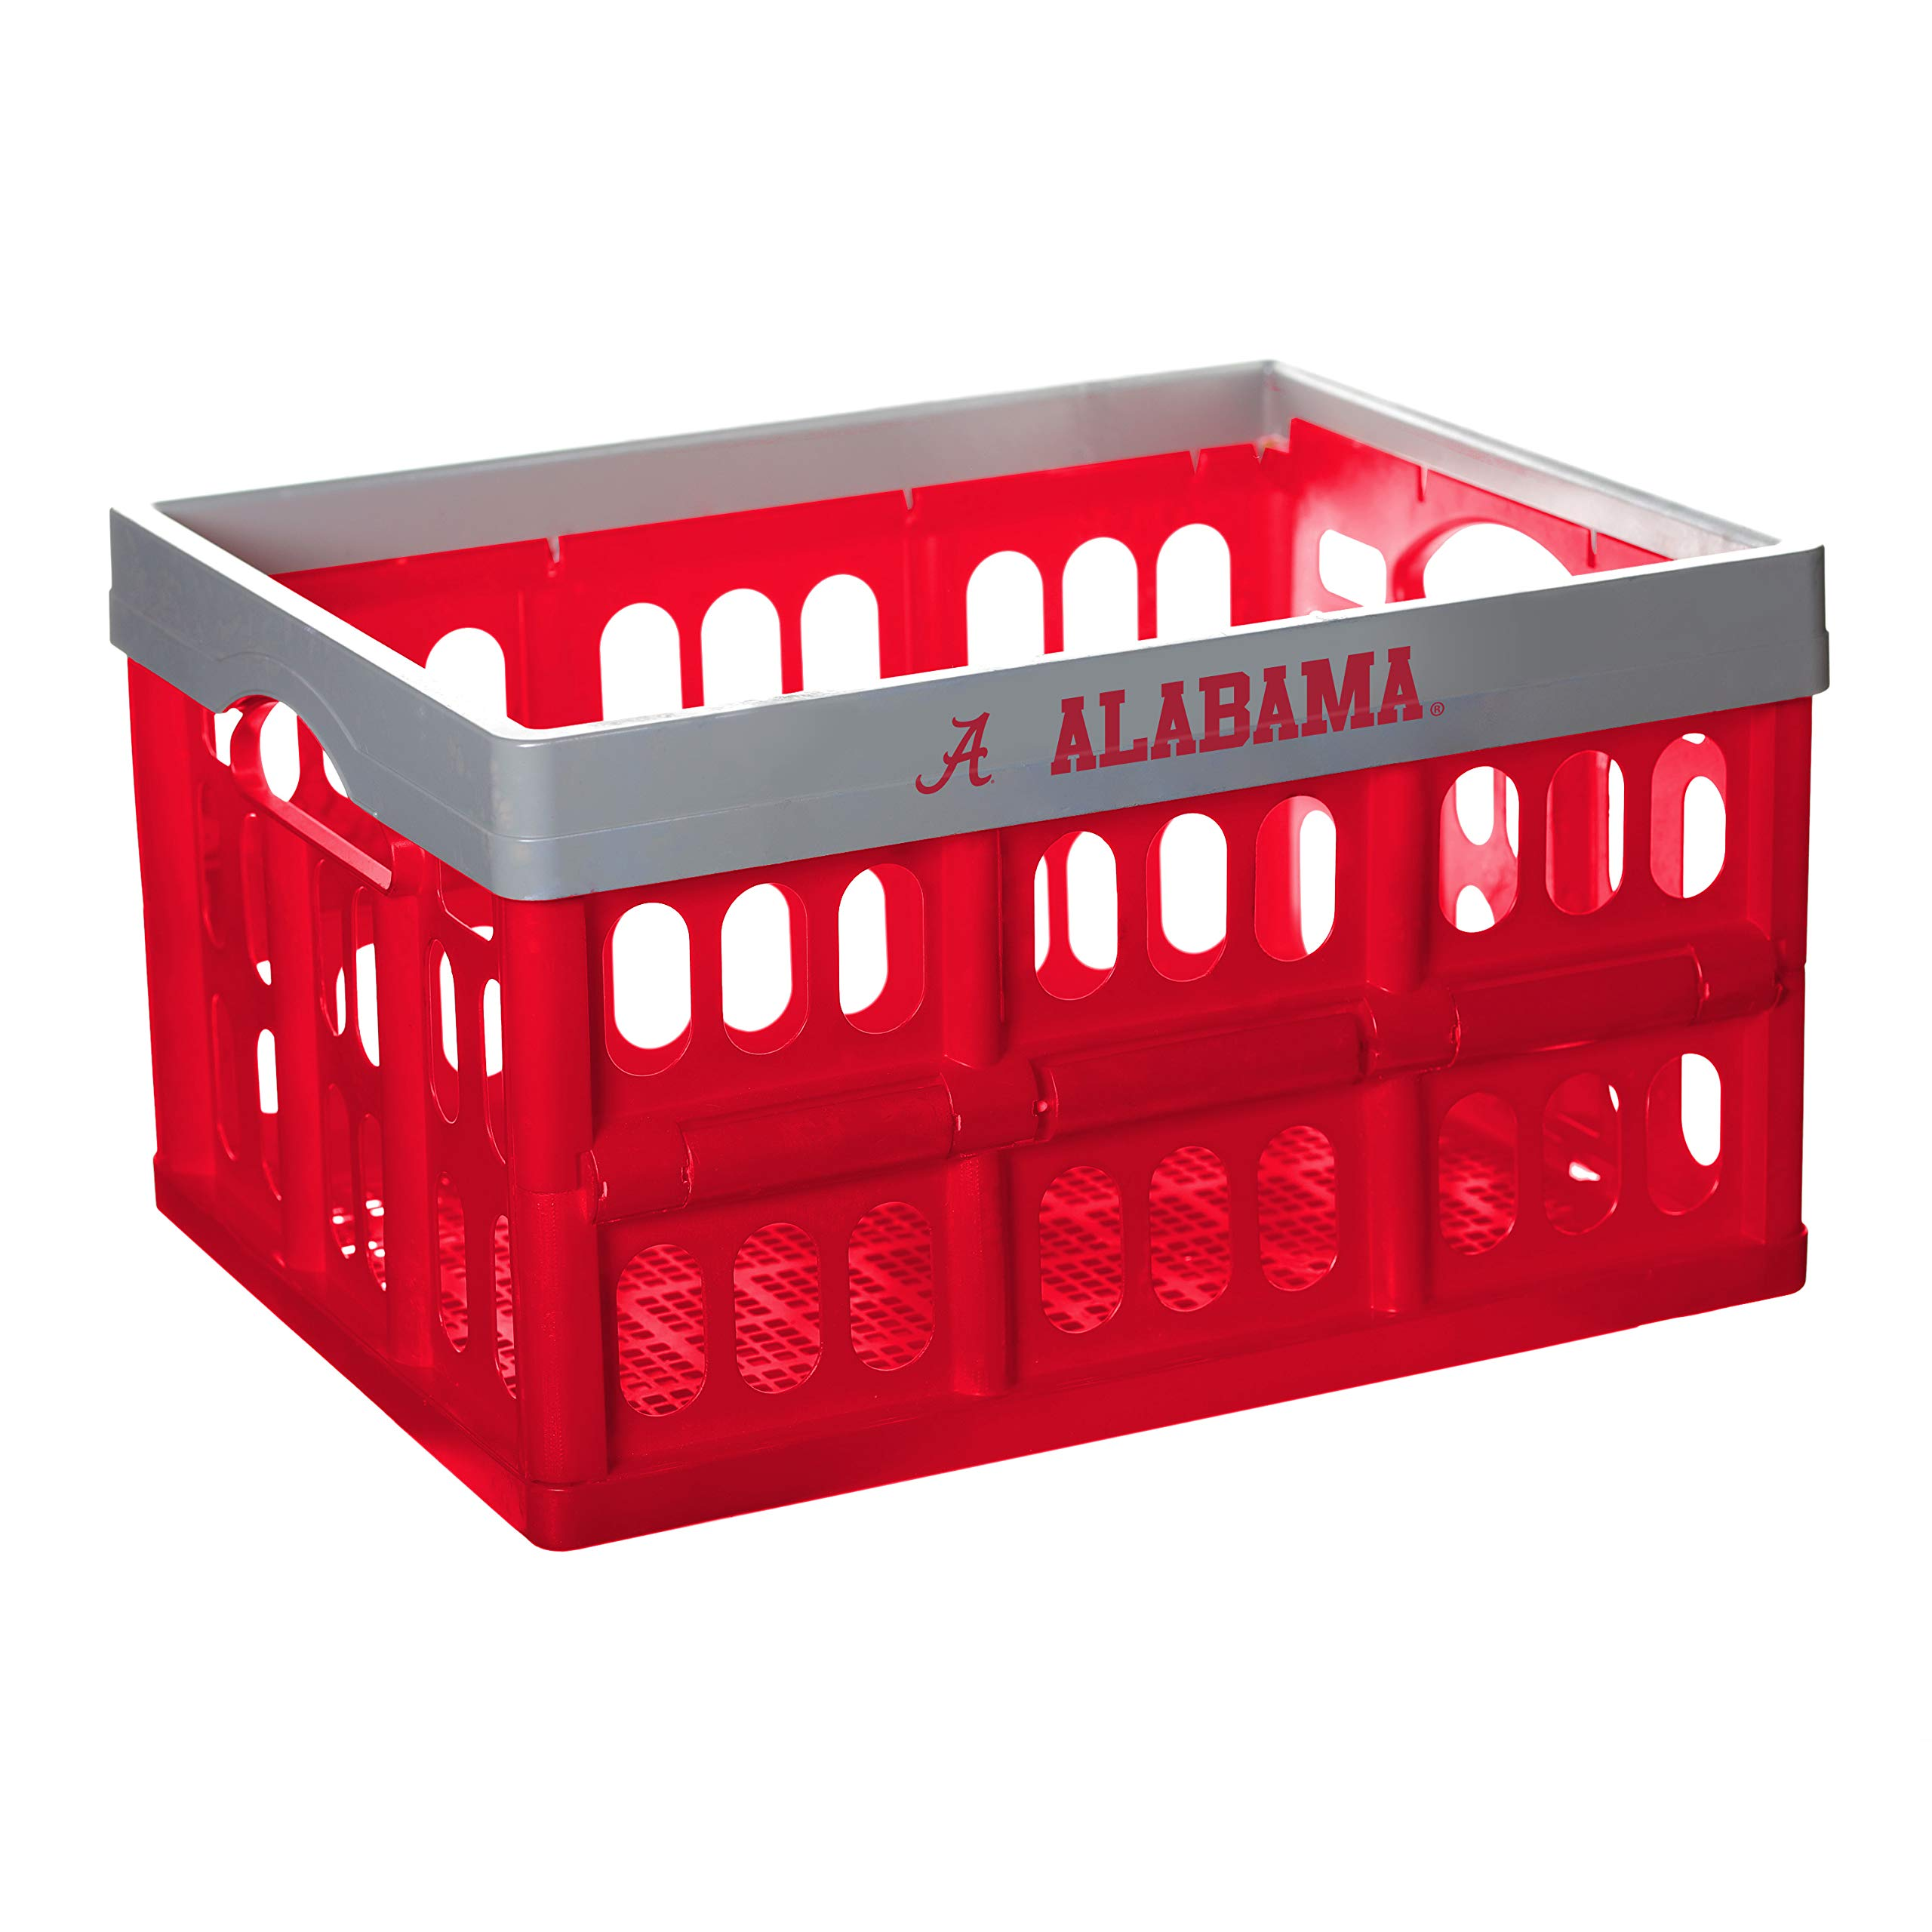 NCAA Fabrique Innovations Collapsible Crate, Alabama Crimson Tide